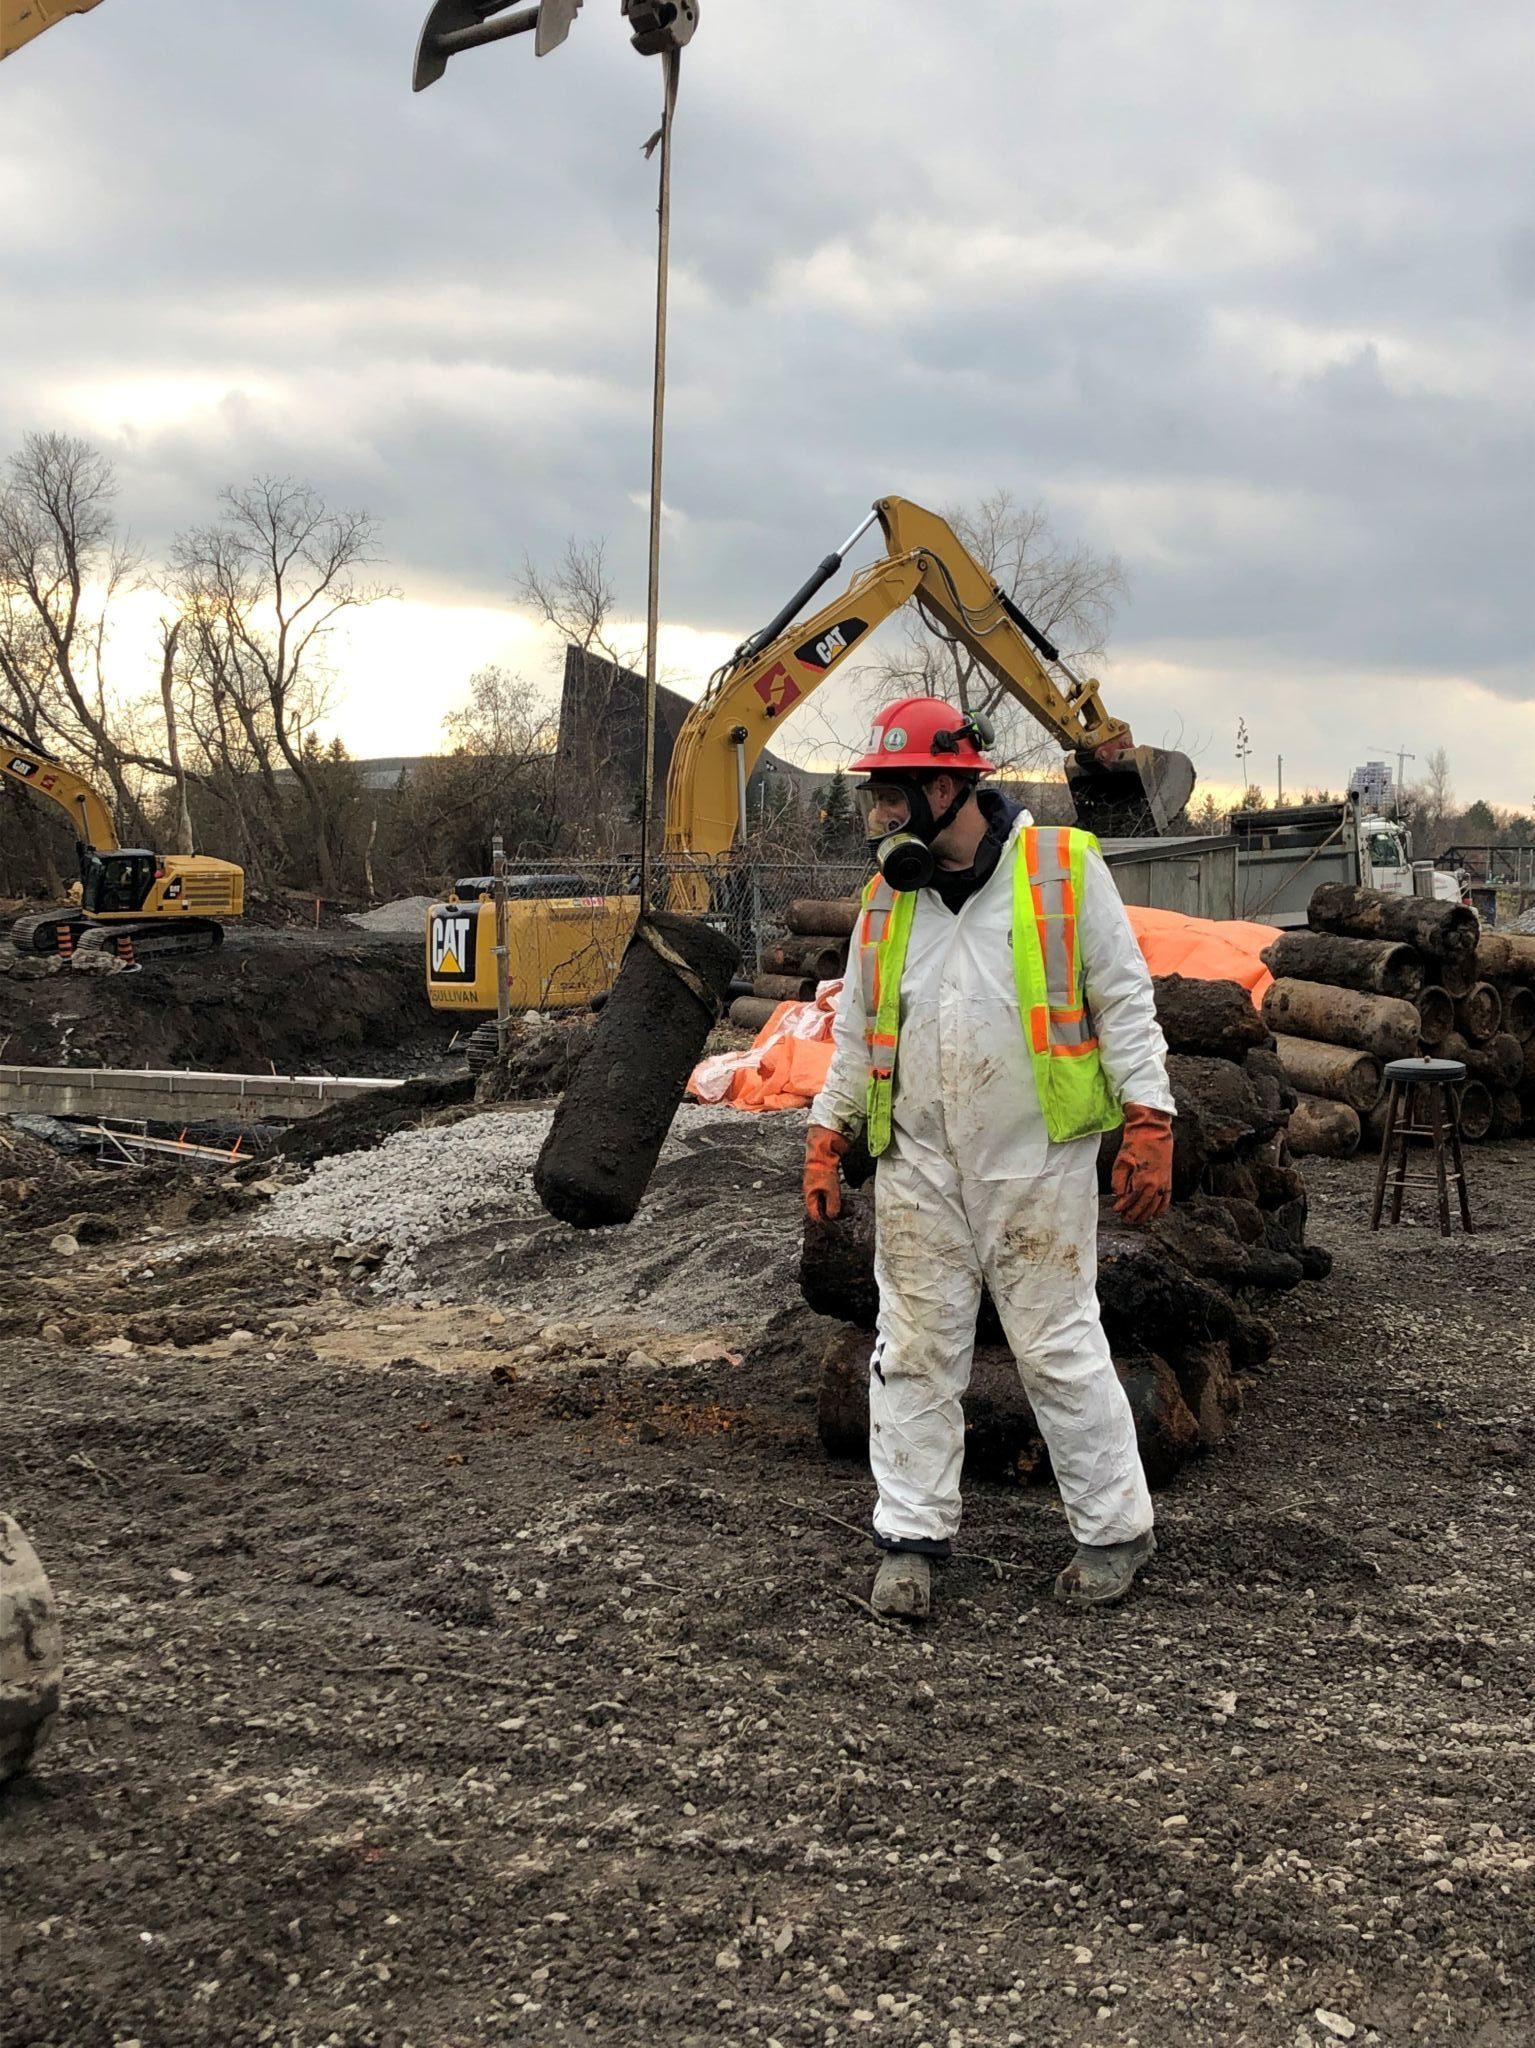 A worker geared up in a carbon-lined suit and full-face respirator stands in front of a pile of acetylene gas cylinders. In the background, there are mechanical excavators.